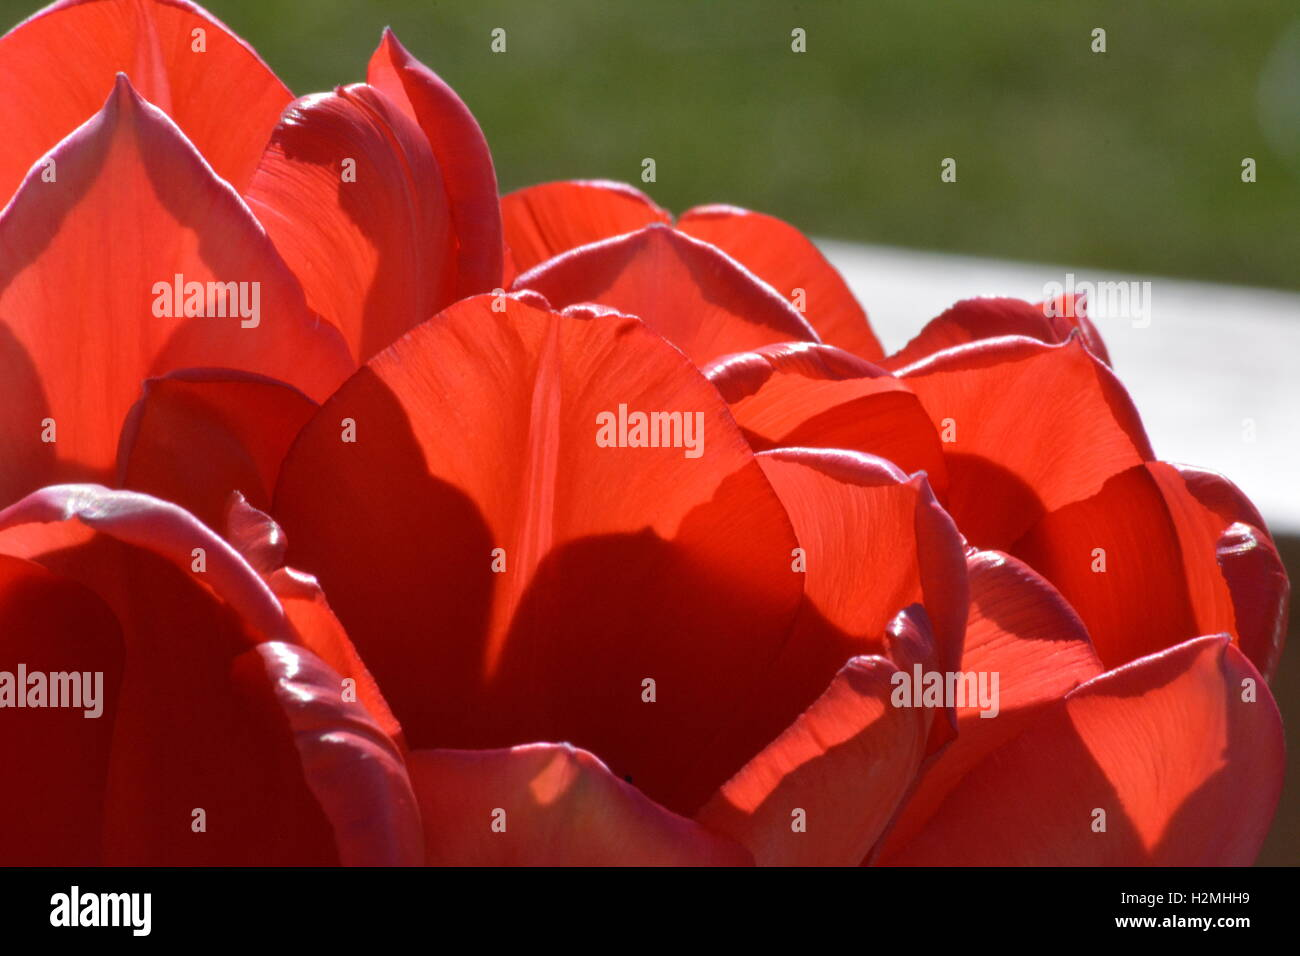 Tulip petals lit by the sun - Stock Image